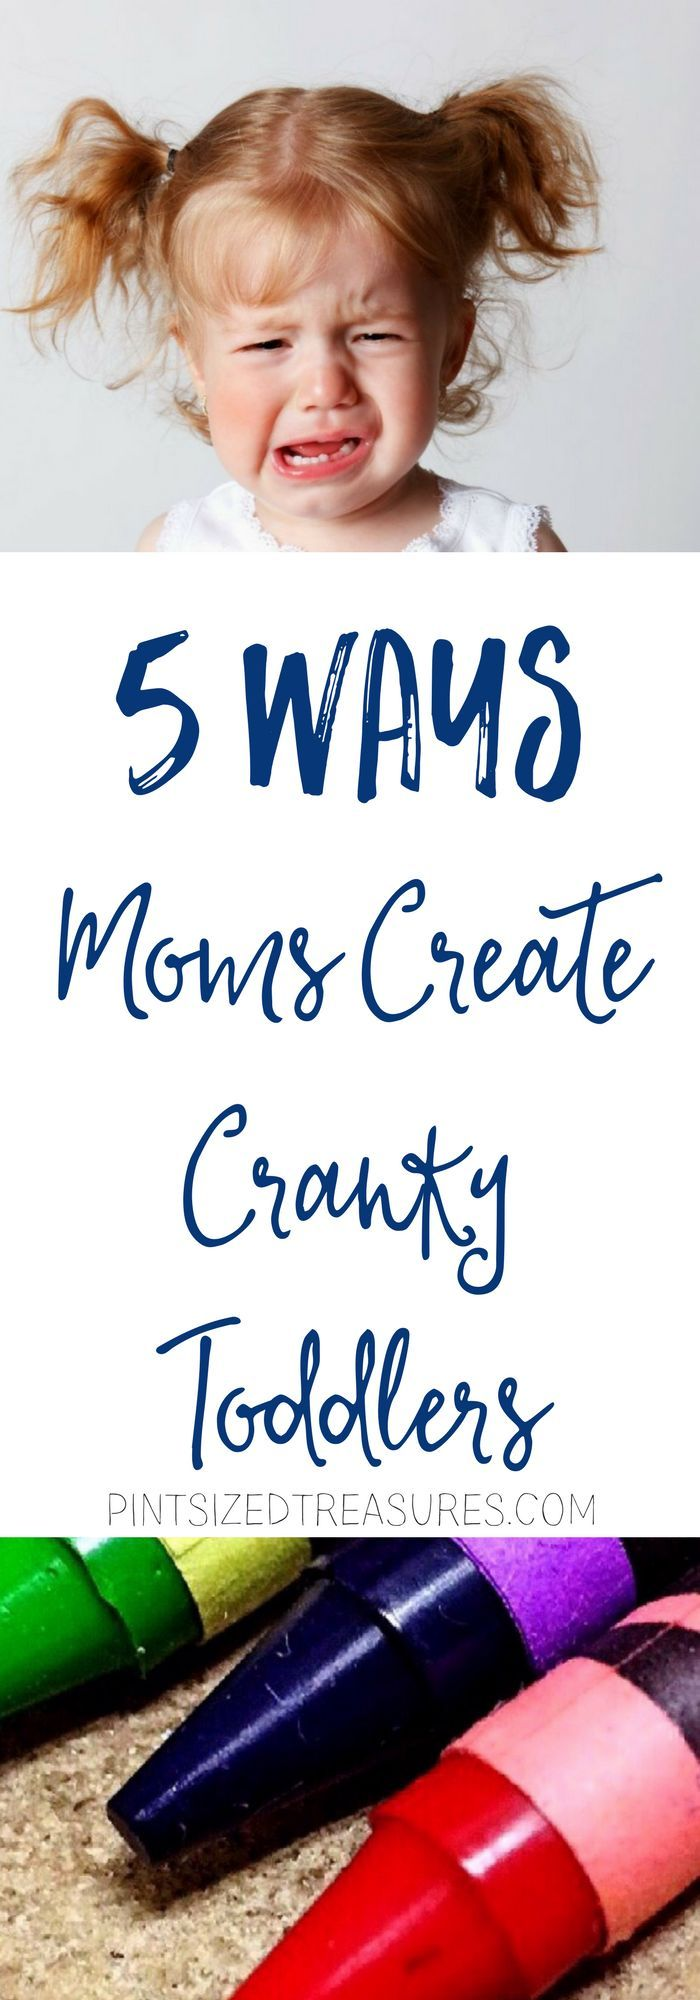 It took my several months to figure out that my mothering style was actually creating a cranky toddler. I had to change. I had to choose to face the music and realize that I didn't have to mother a cranky toddler --- I could create a happy one! Are you creating a cranky toddler? Find out!